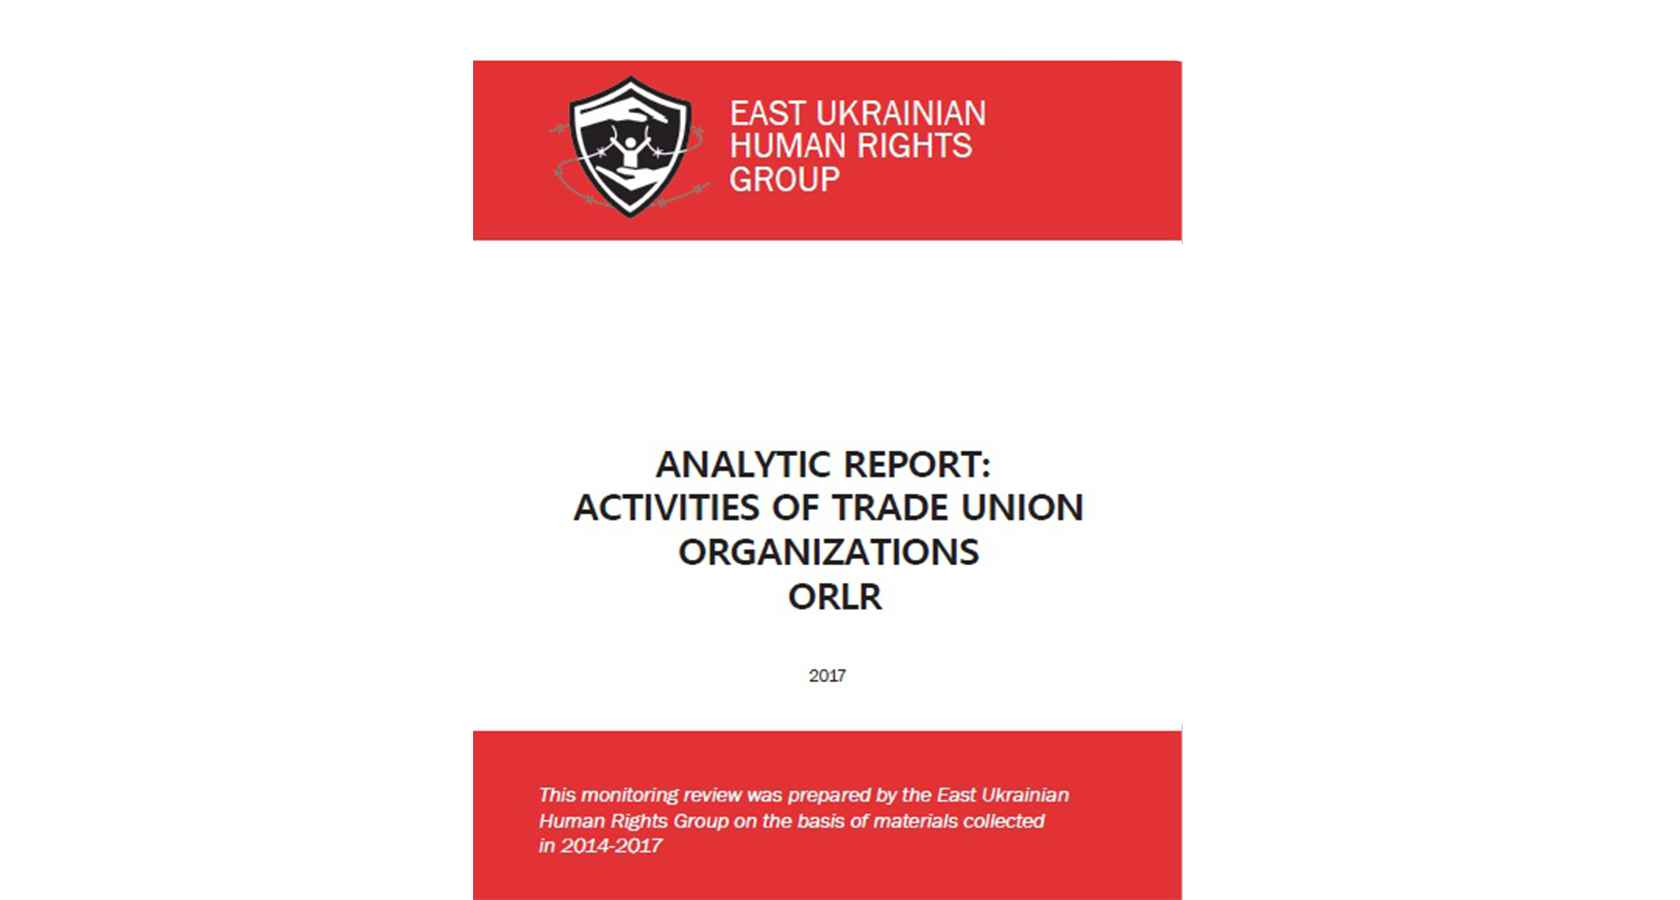 Analytic report: activities of trade union organizations ORLO. Download